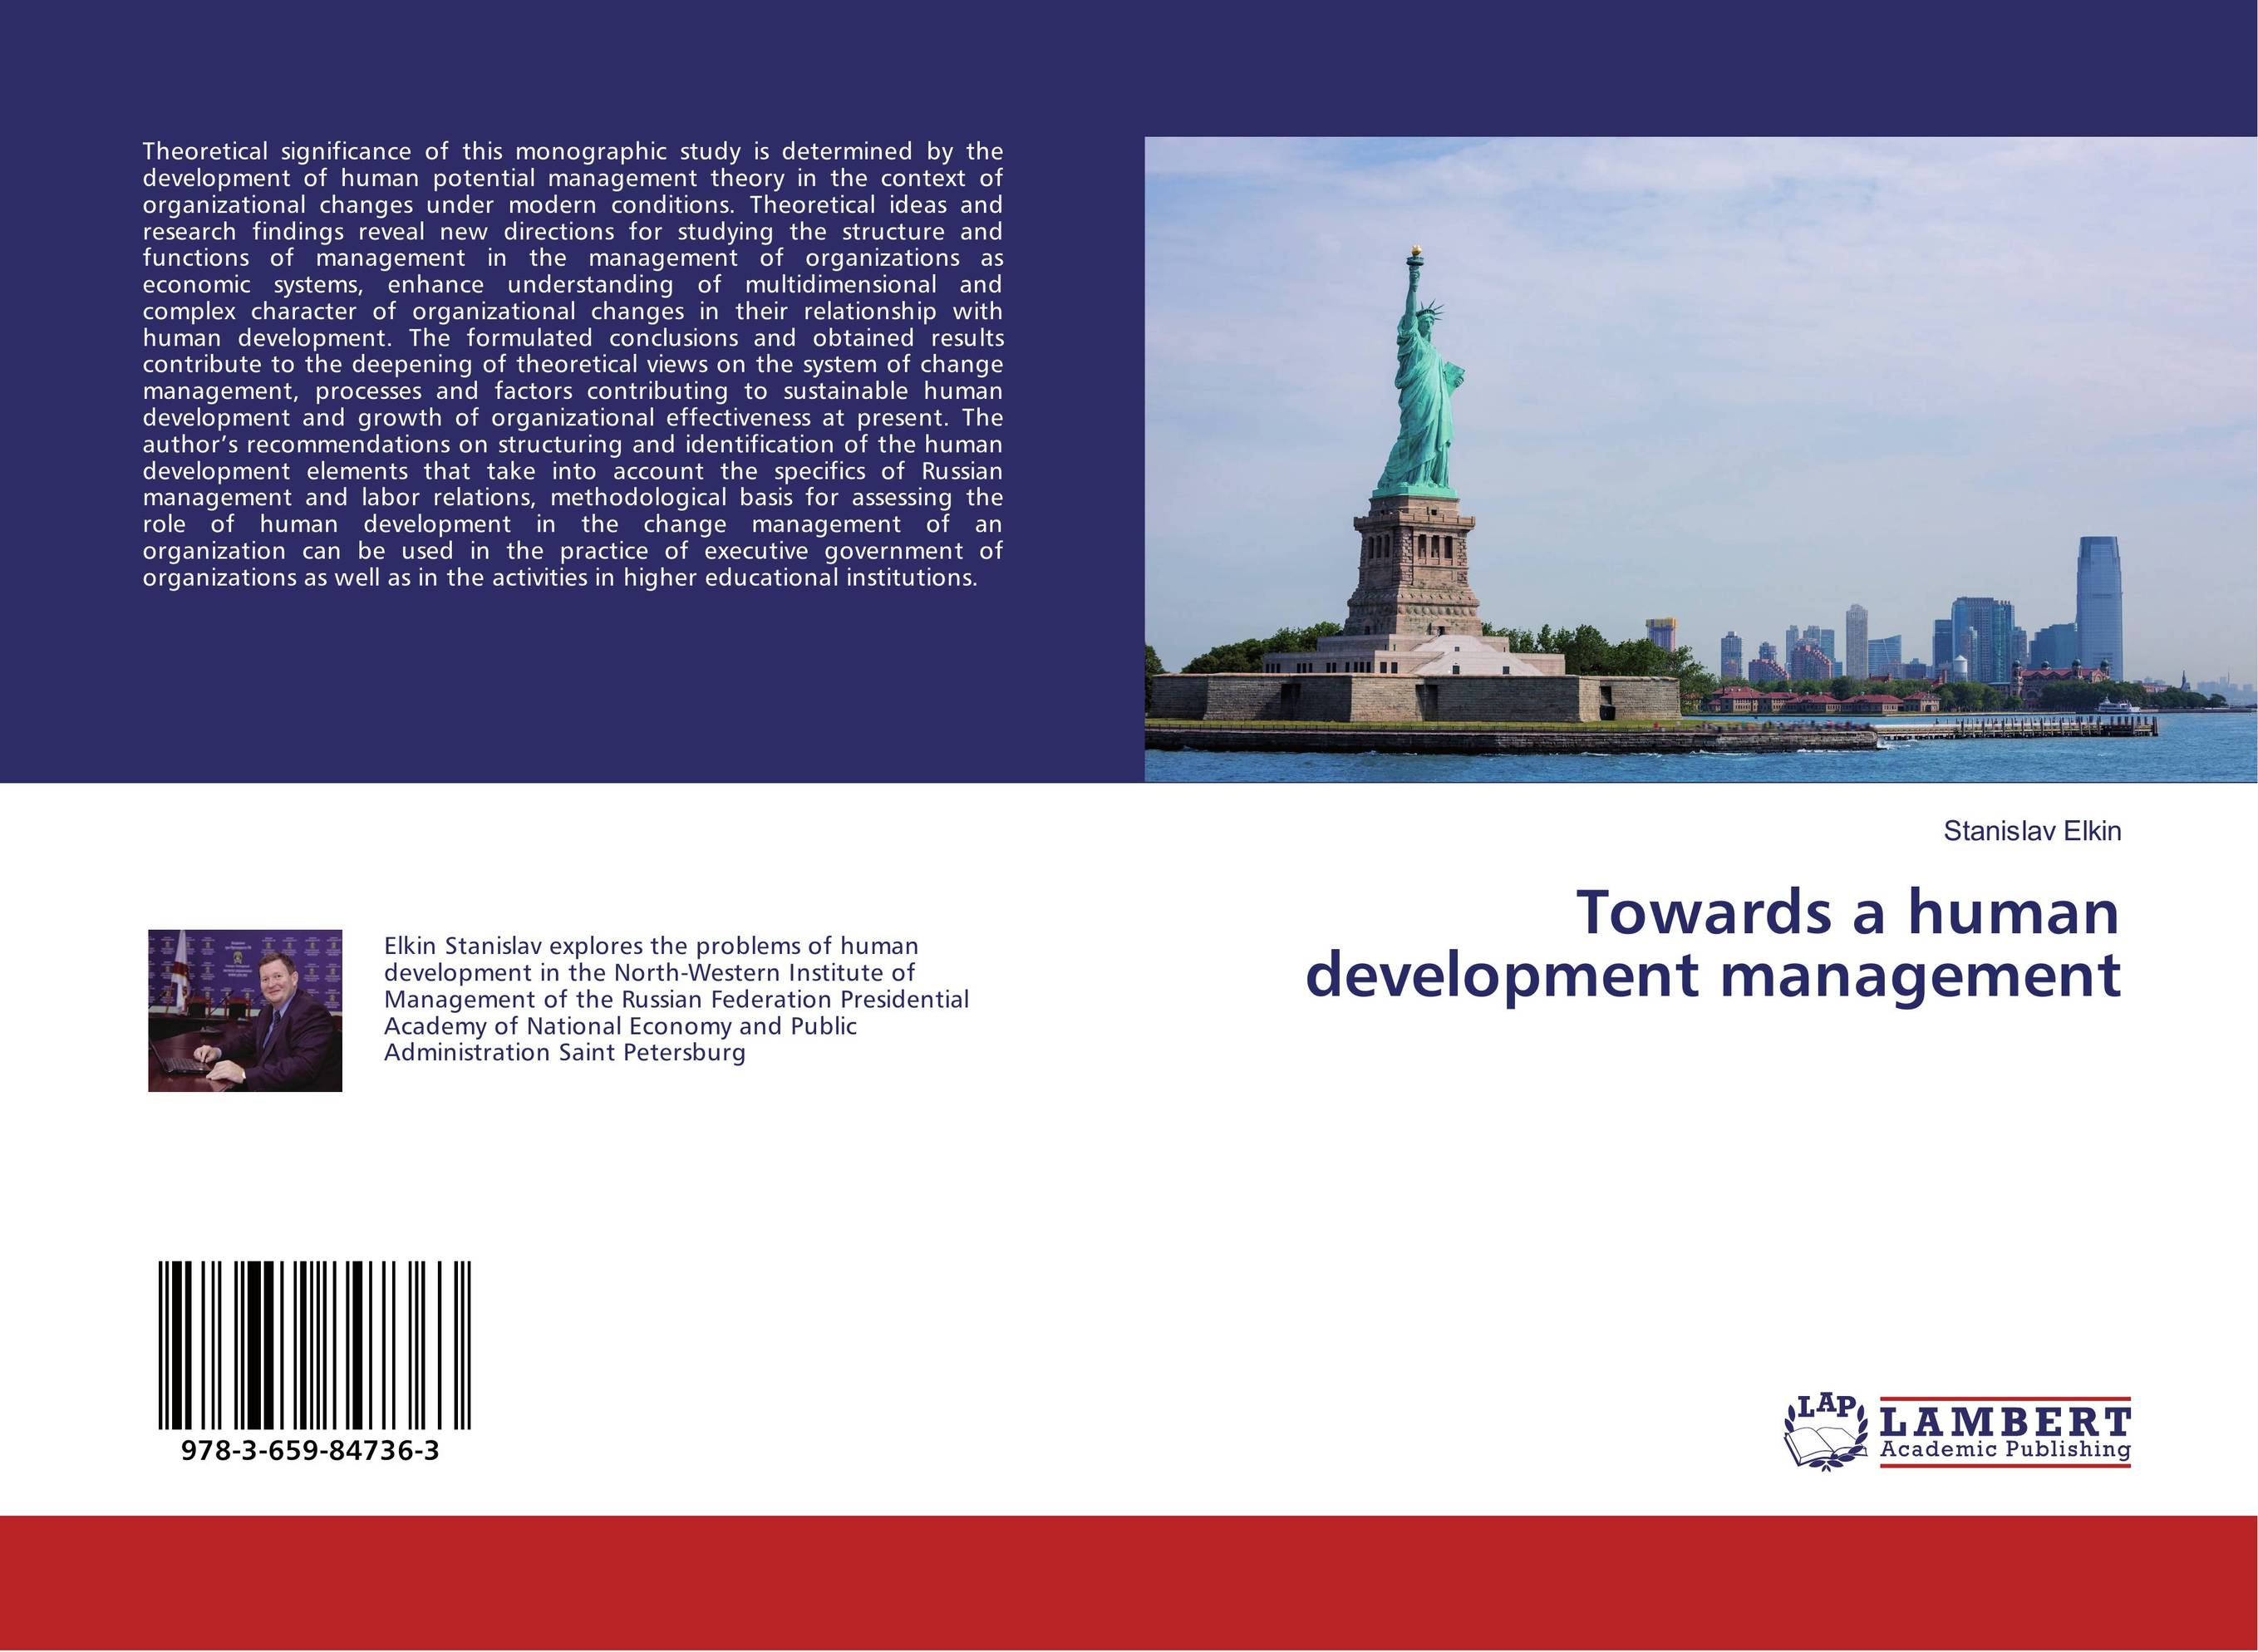 Towards a human development management the role of evaluation as a mechanism for advancing principal practice